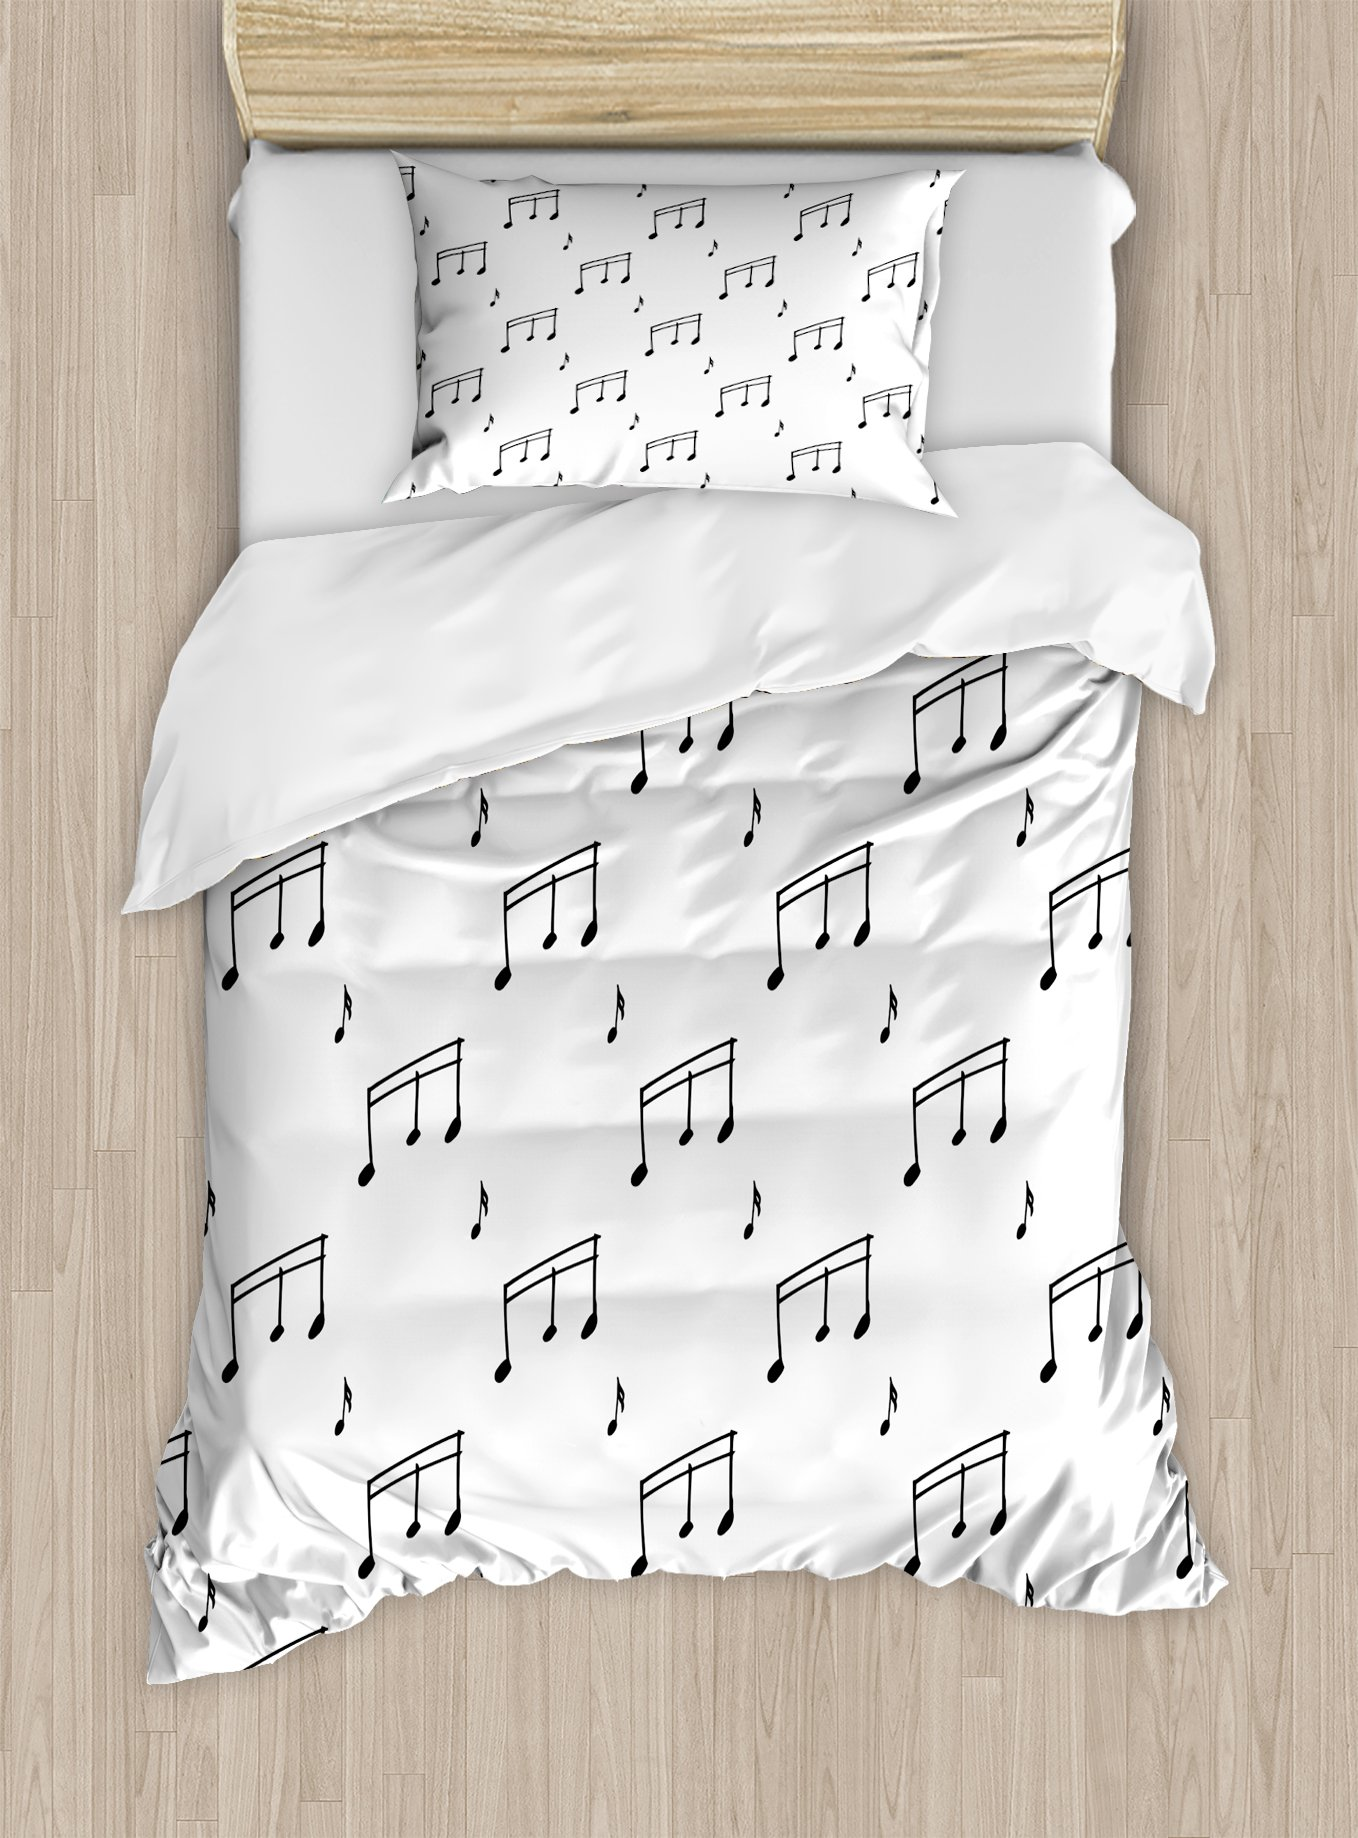 Ambesonne Music Duvet Cover Set Twin Size, Musical Notes Theme Melody Sonata Singing Song Clef Tunes Hand Drawn Style Pattern, Decorative 2 Piece Bedding Set with 1 Pillow Sham, Charcoal Grey